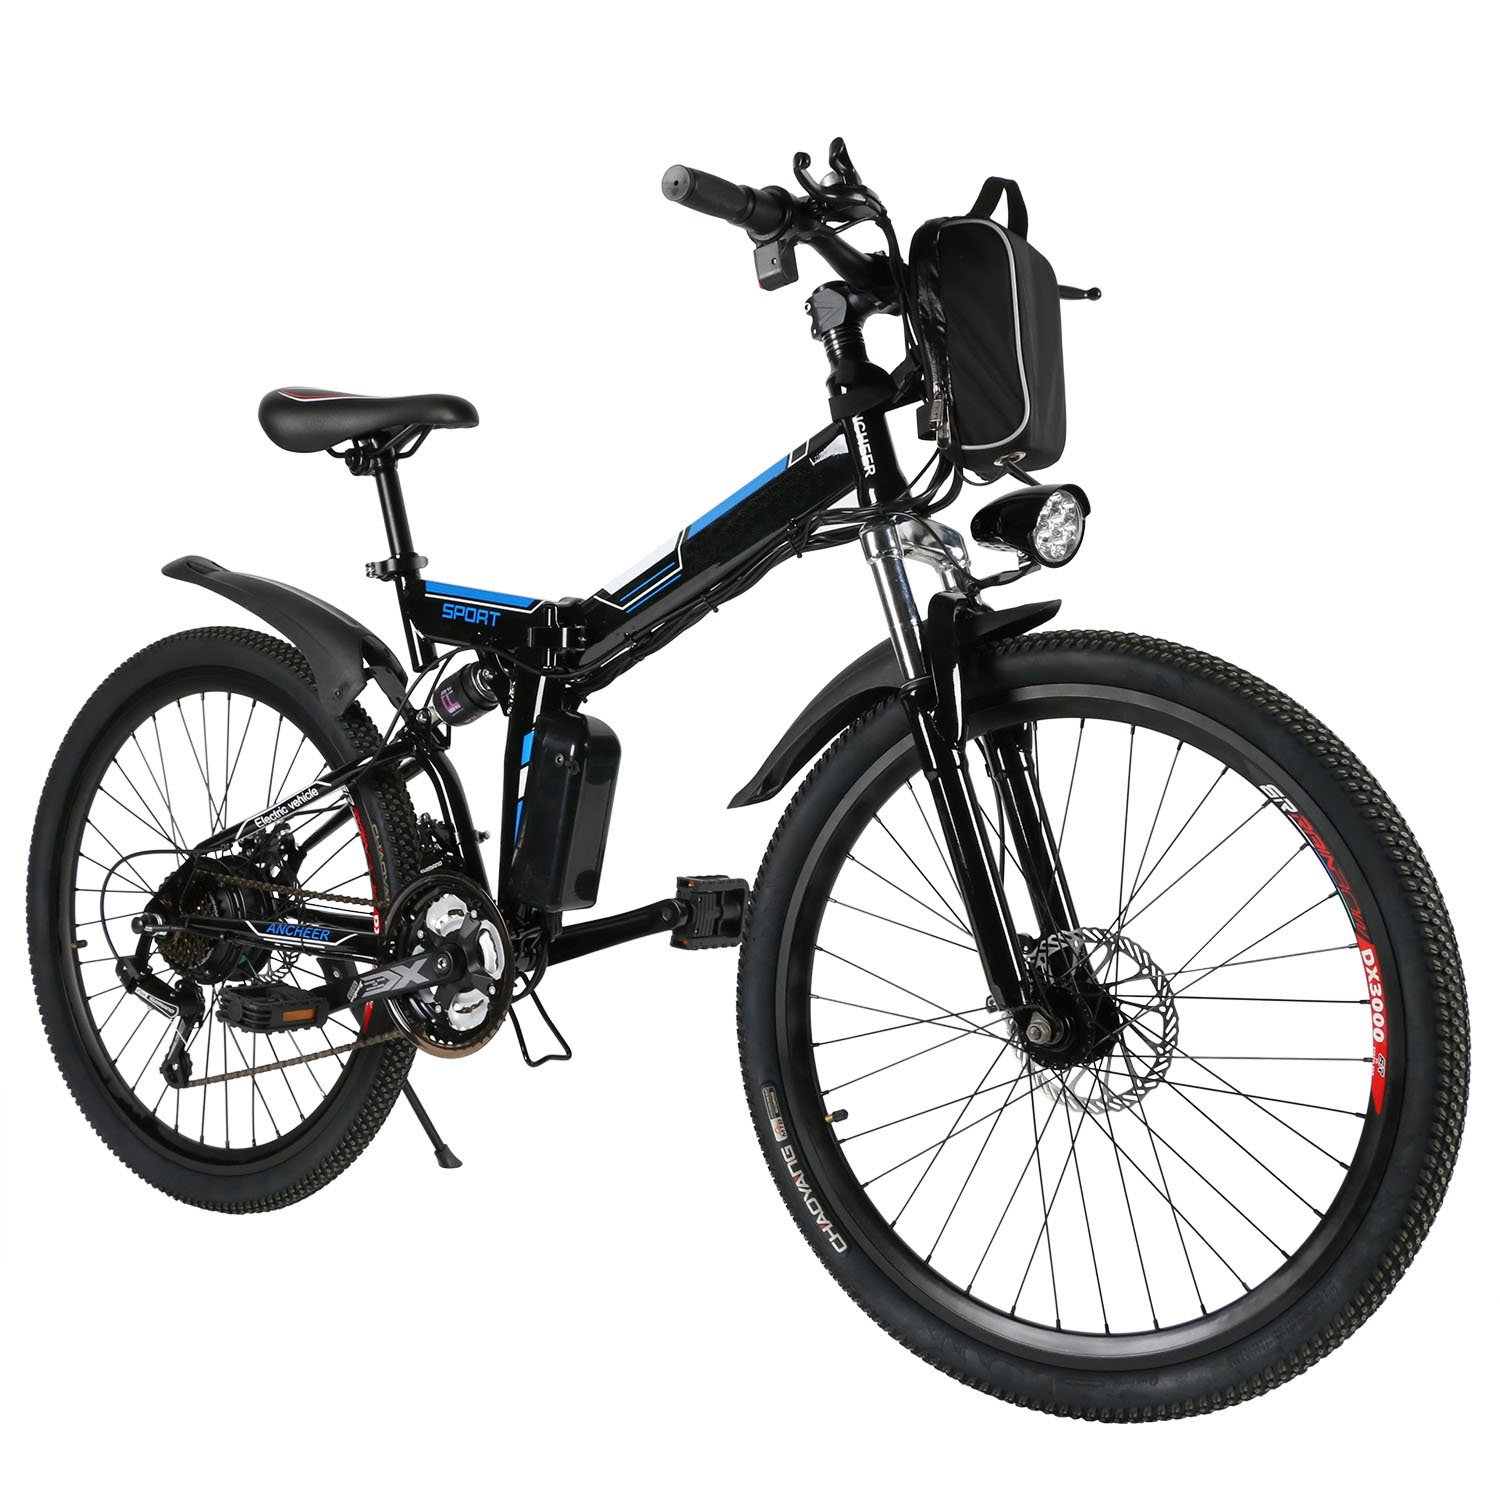 0b3df8ba829 Folding Electric Mountain Bike, 26 Inch Wheel, Removable Lithium-Ion  Battery (36V 250W), 3-Speed Changeable E-Bike【US Stock】